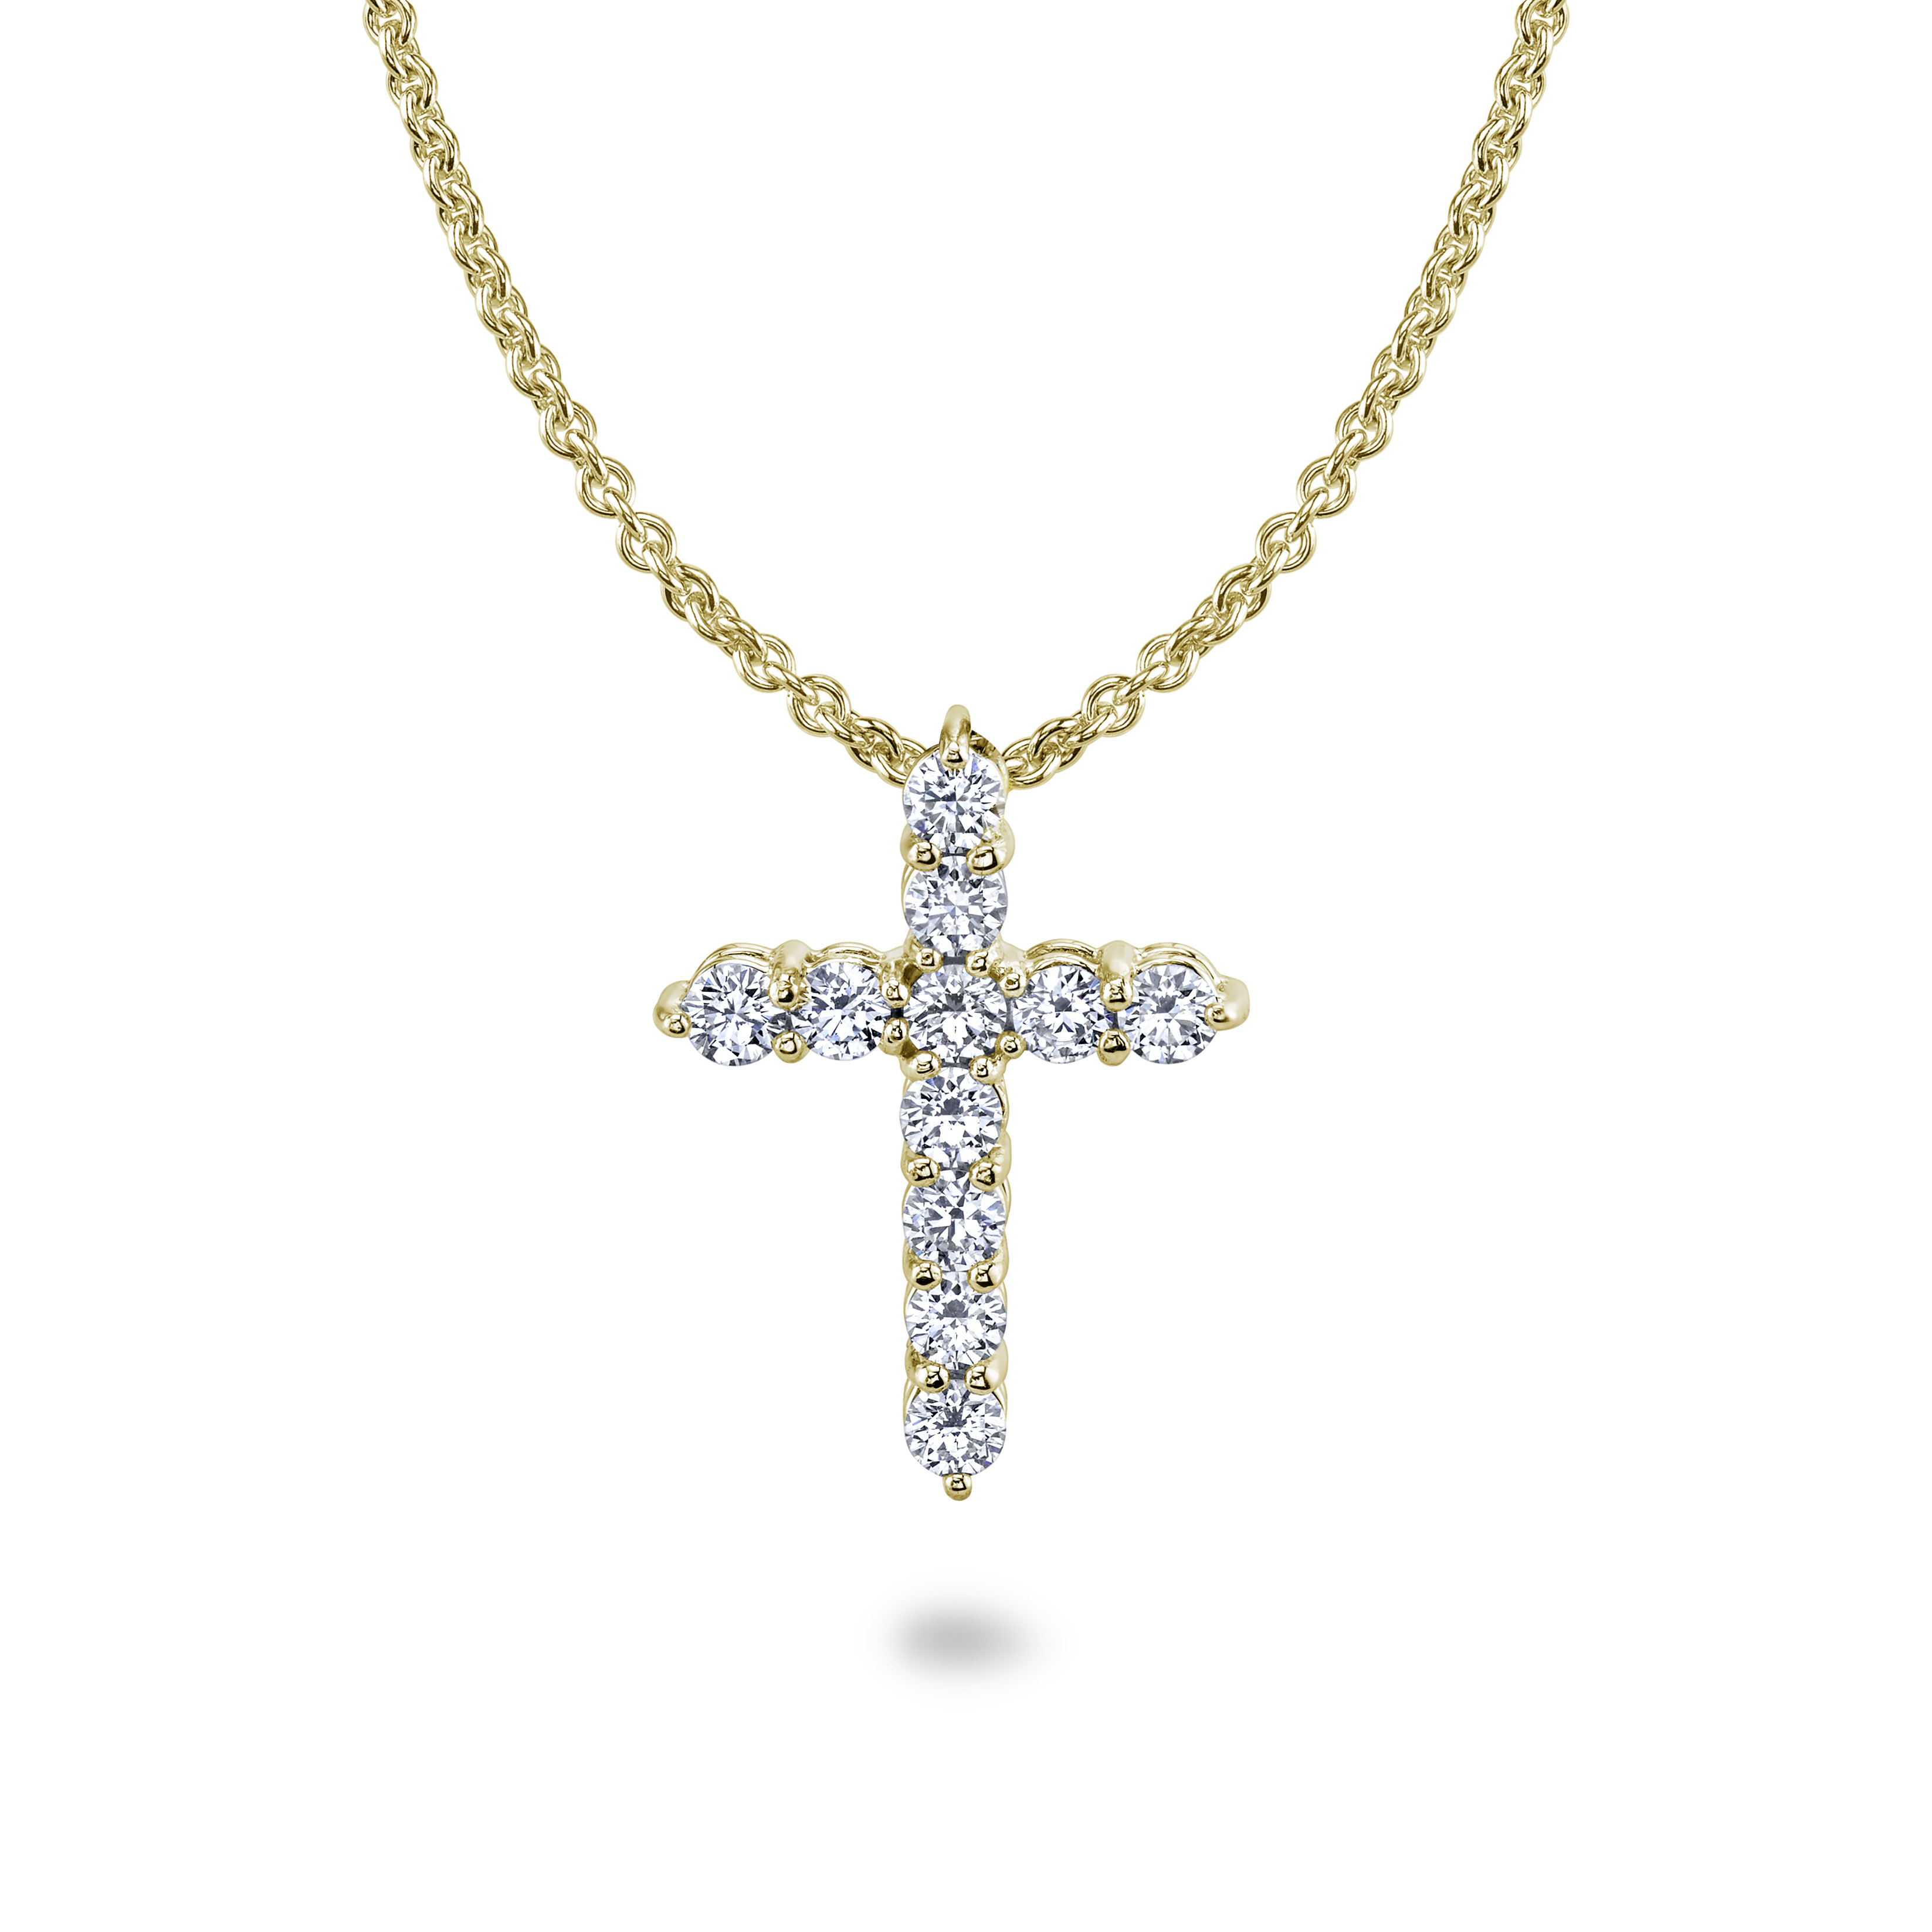 Custom Cross Design By Hamra Jewelers